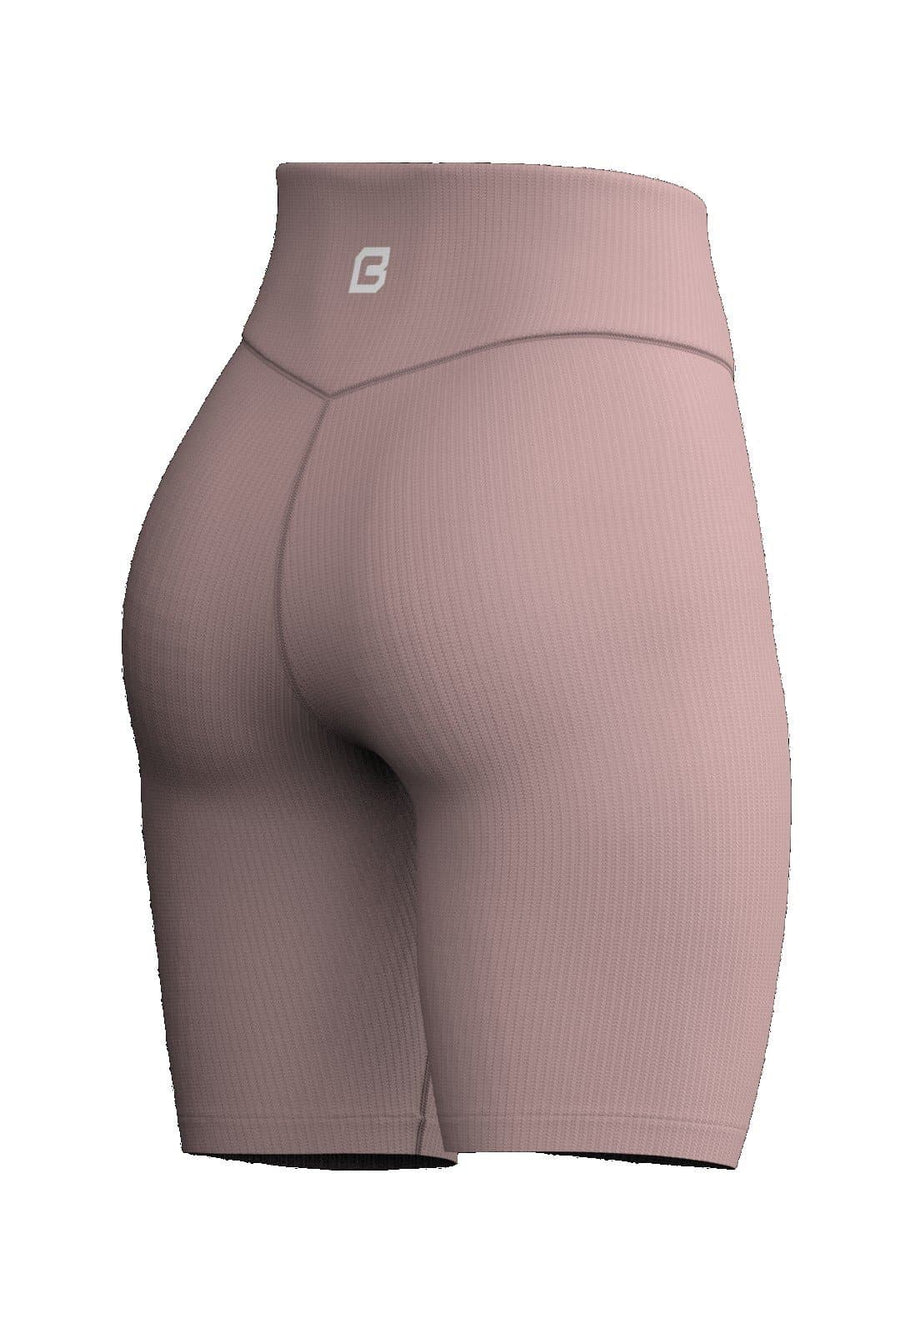 Recharge Ribbed Biker Shorts - Dusty Rose - Bodcraft